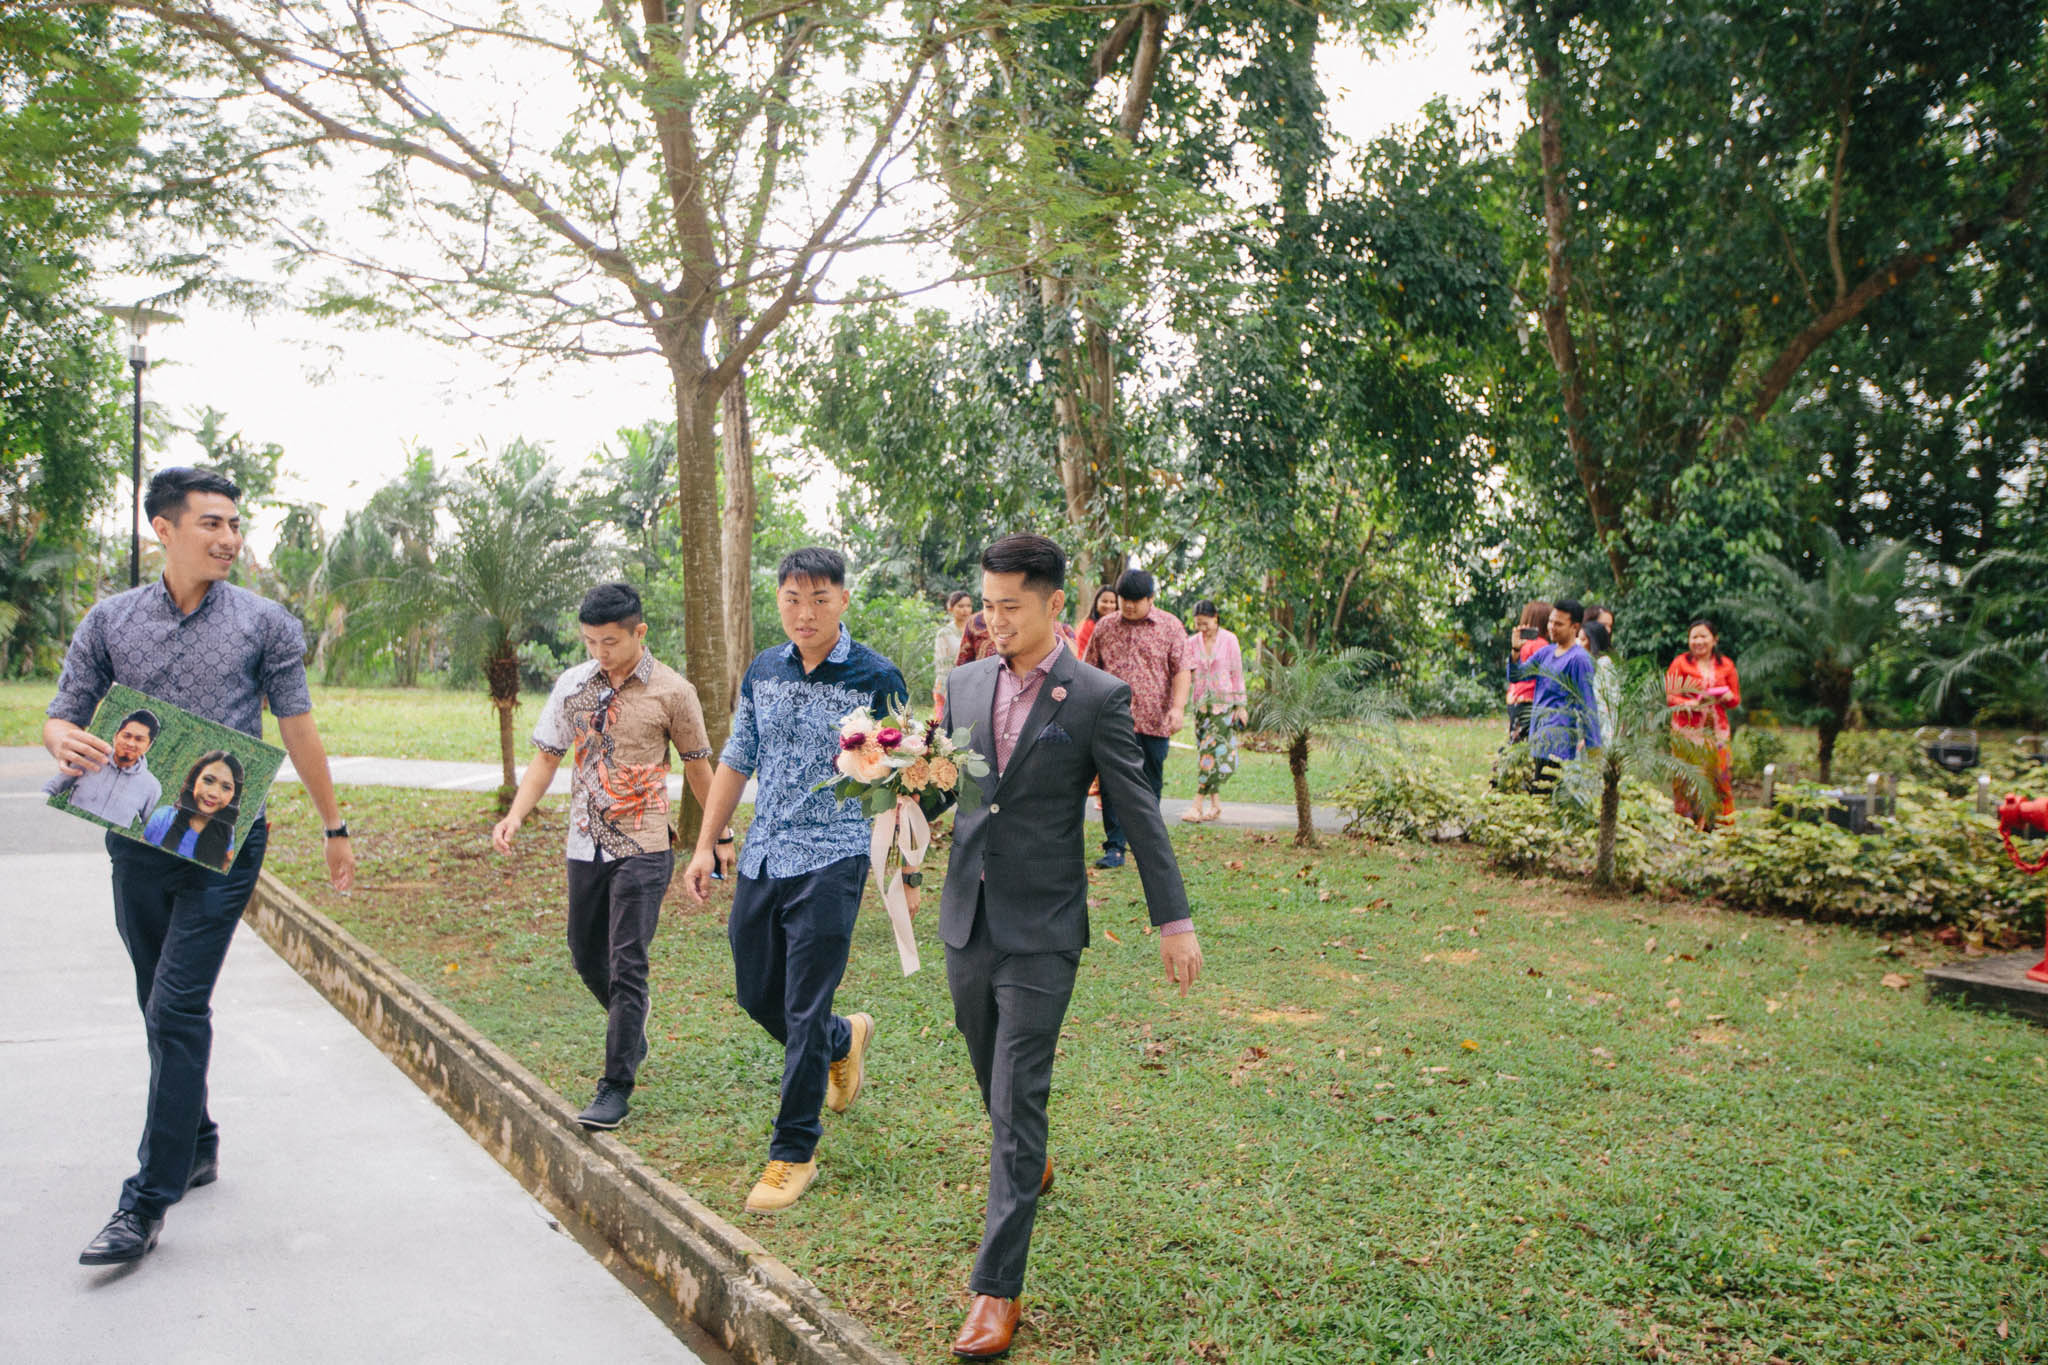 singapore-wedding-photographer-wedding-hafiana-teck-kuan-011.jpg